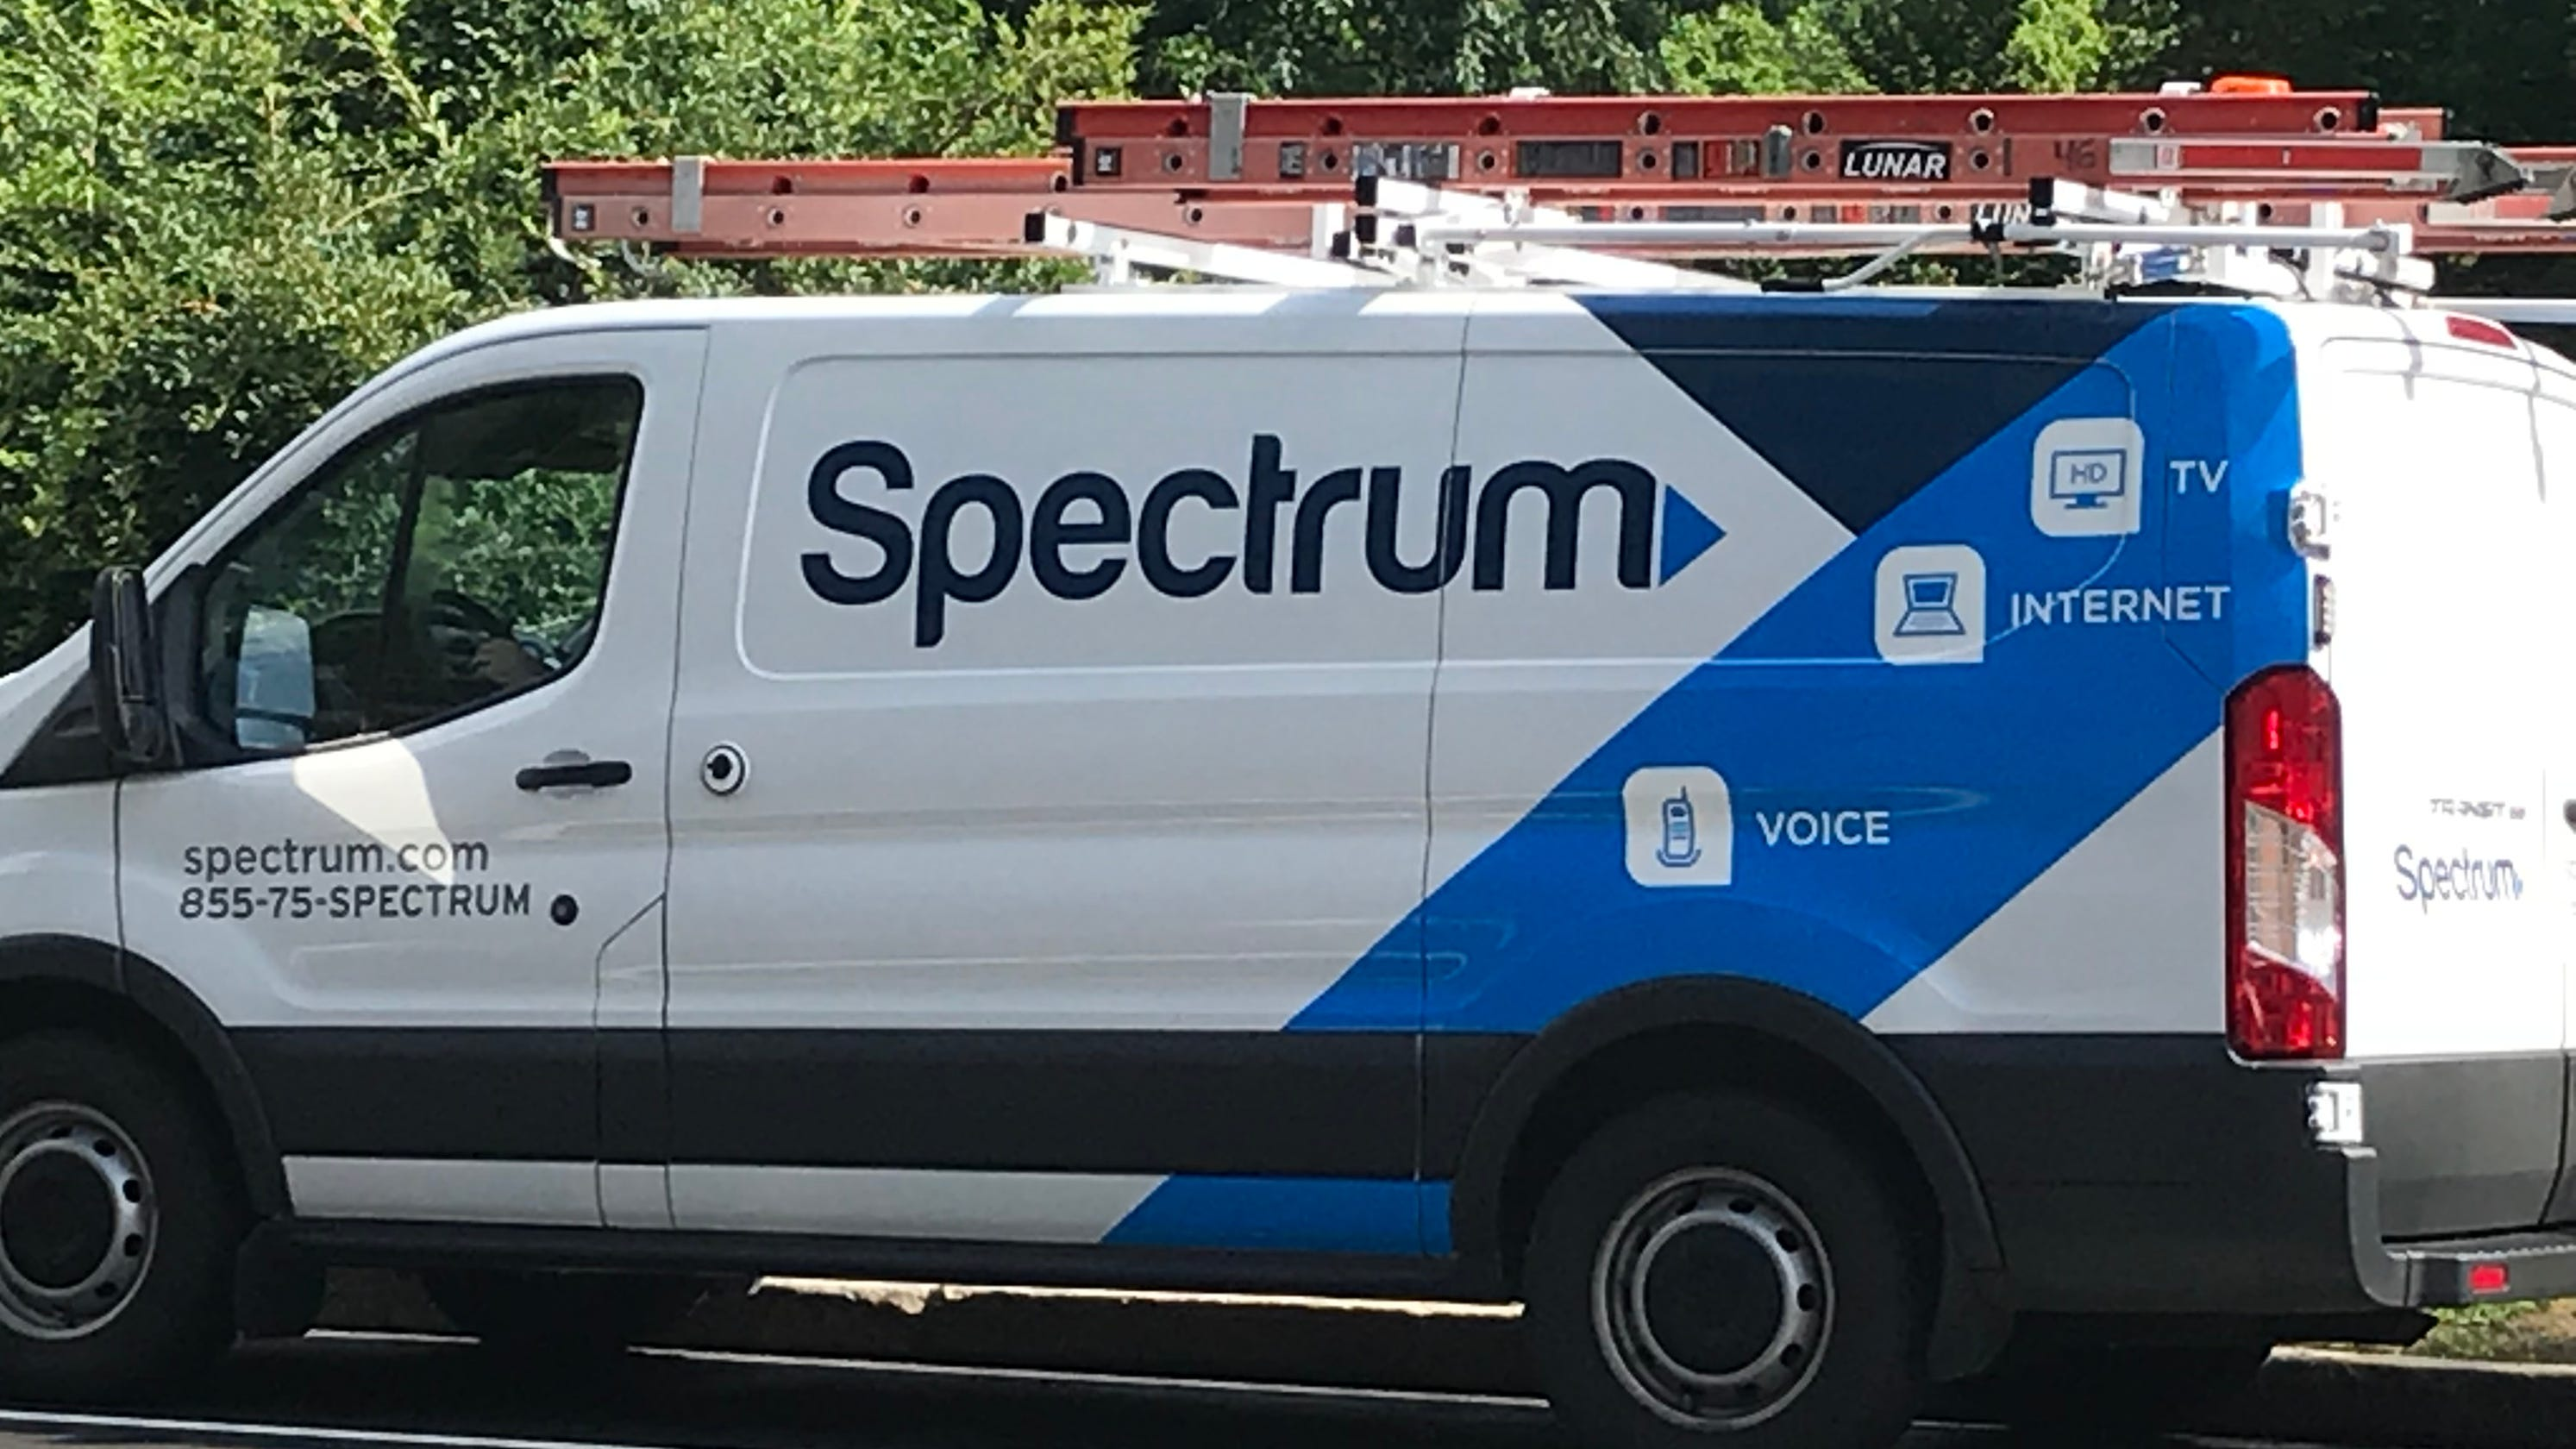 Spectrum cable to increase cable costs next month